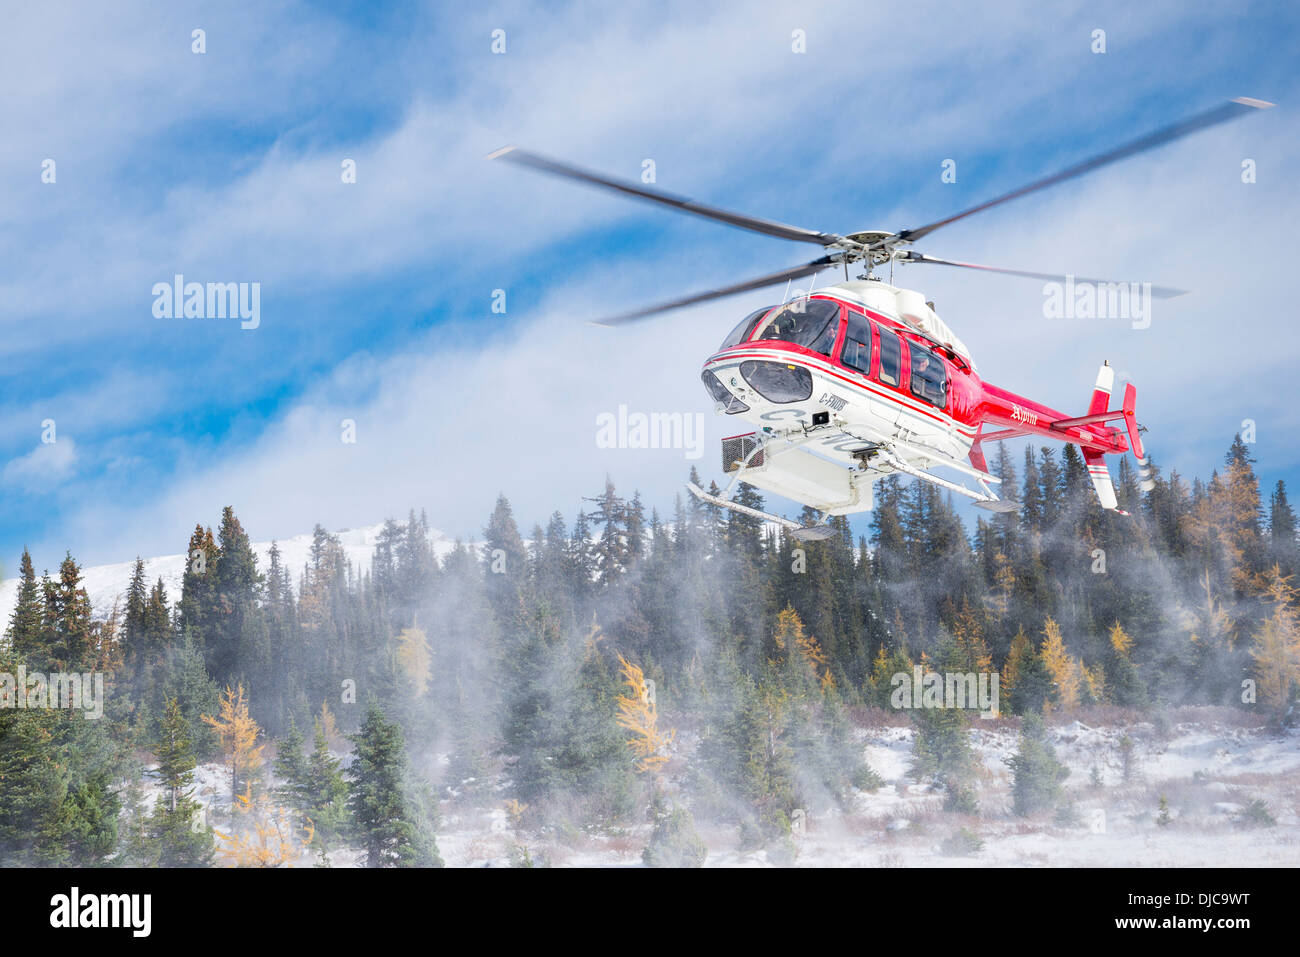 Helicopter landing in winter - Stock Image